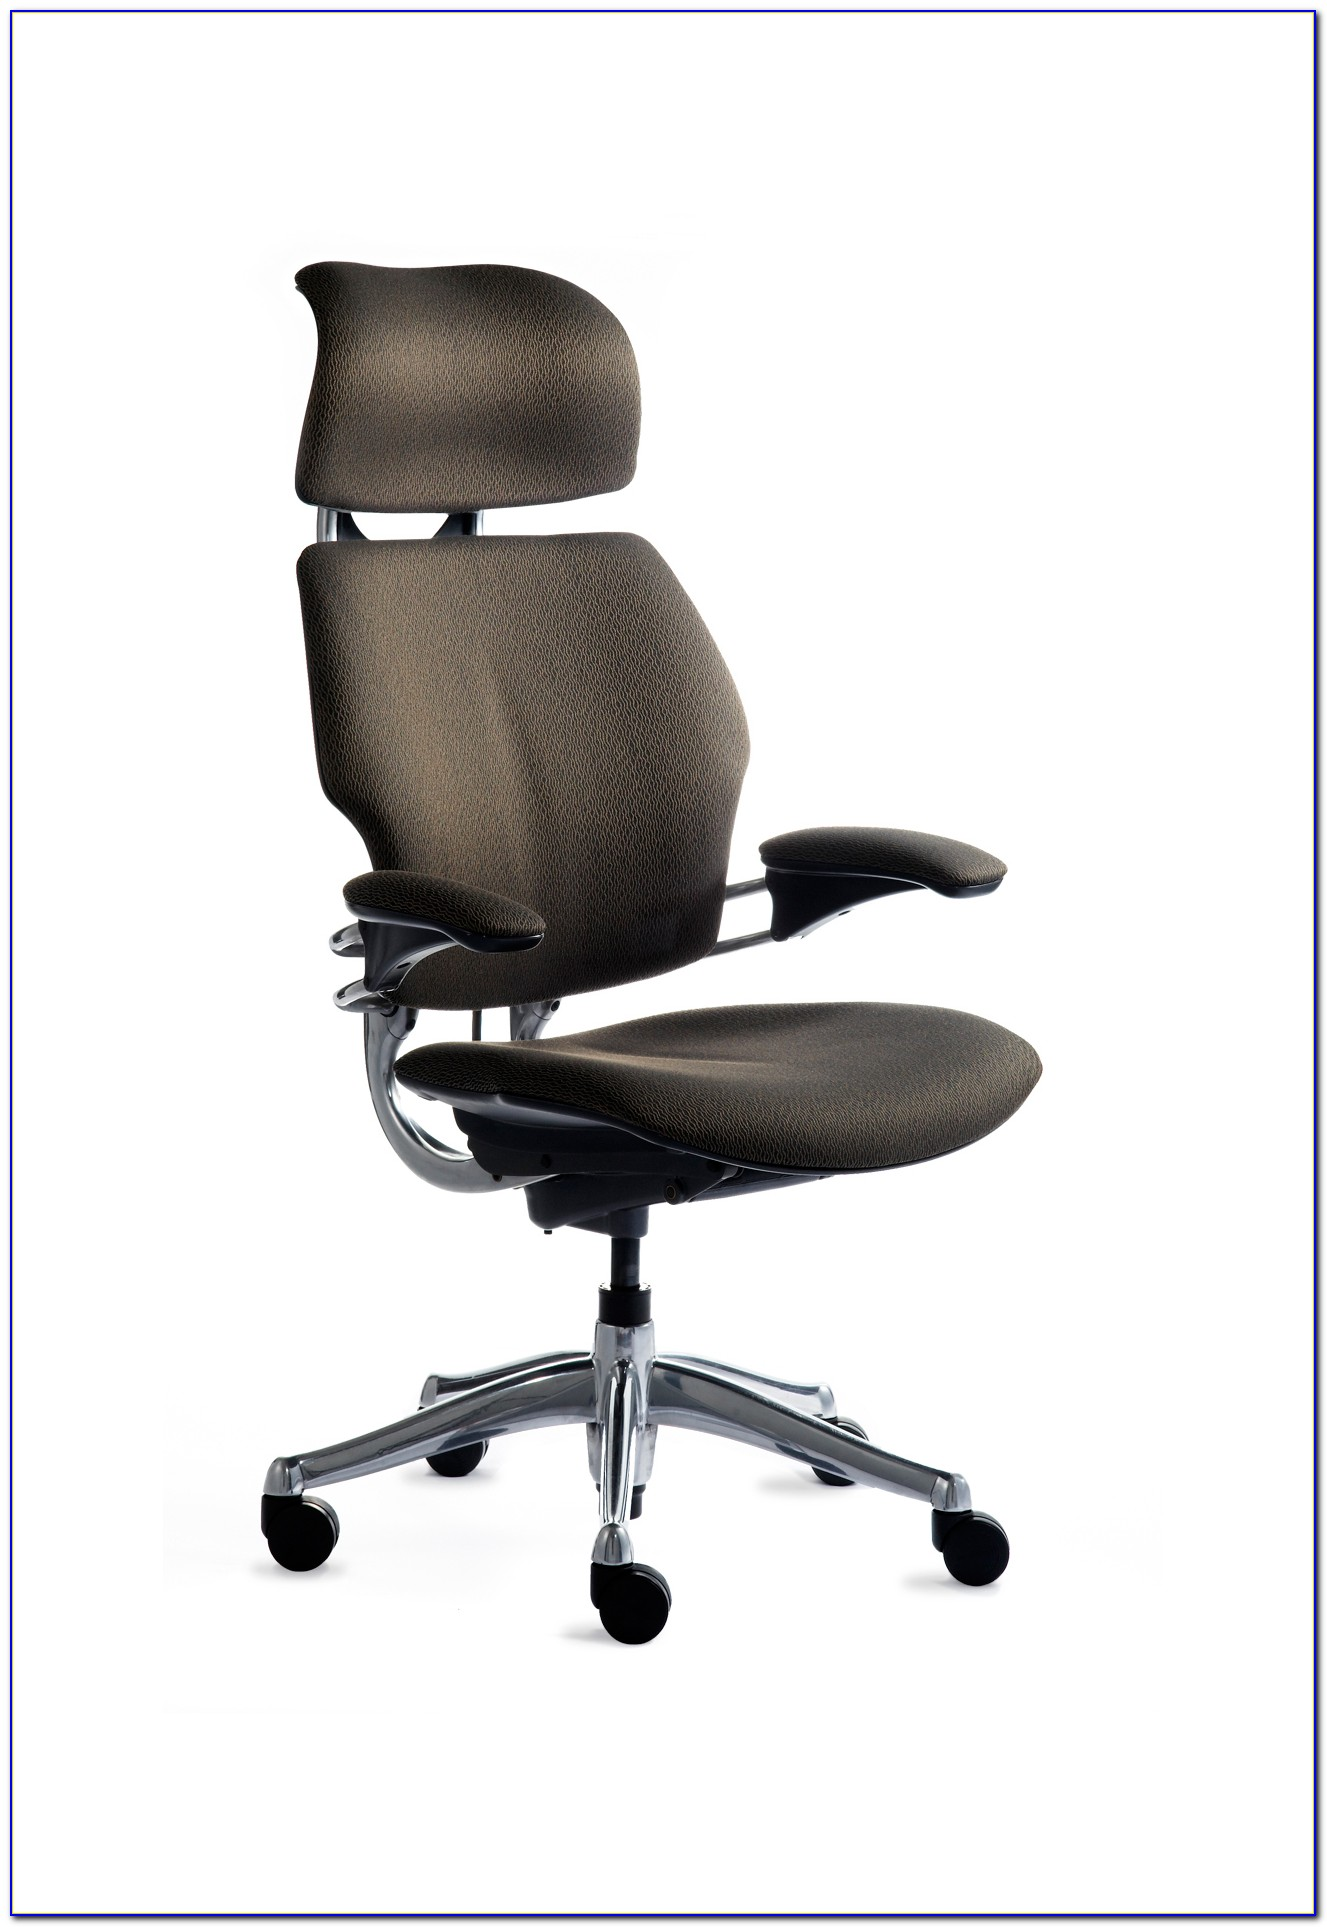 Humanscale Freedom Chair | Humanscale Chair Review | Freedom Humanscale Chair